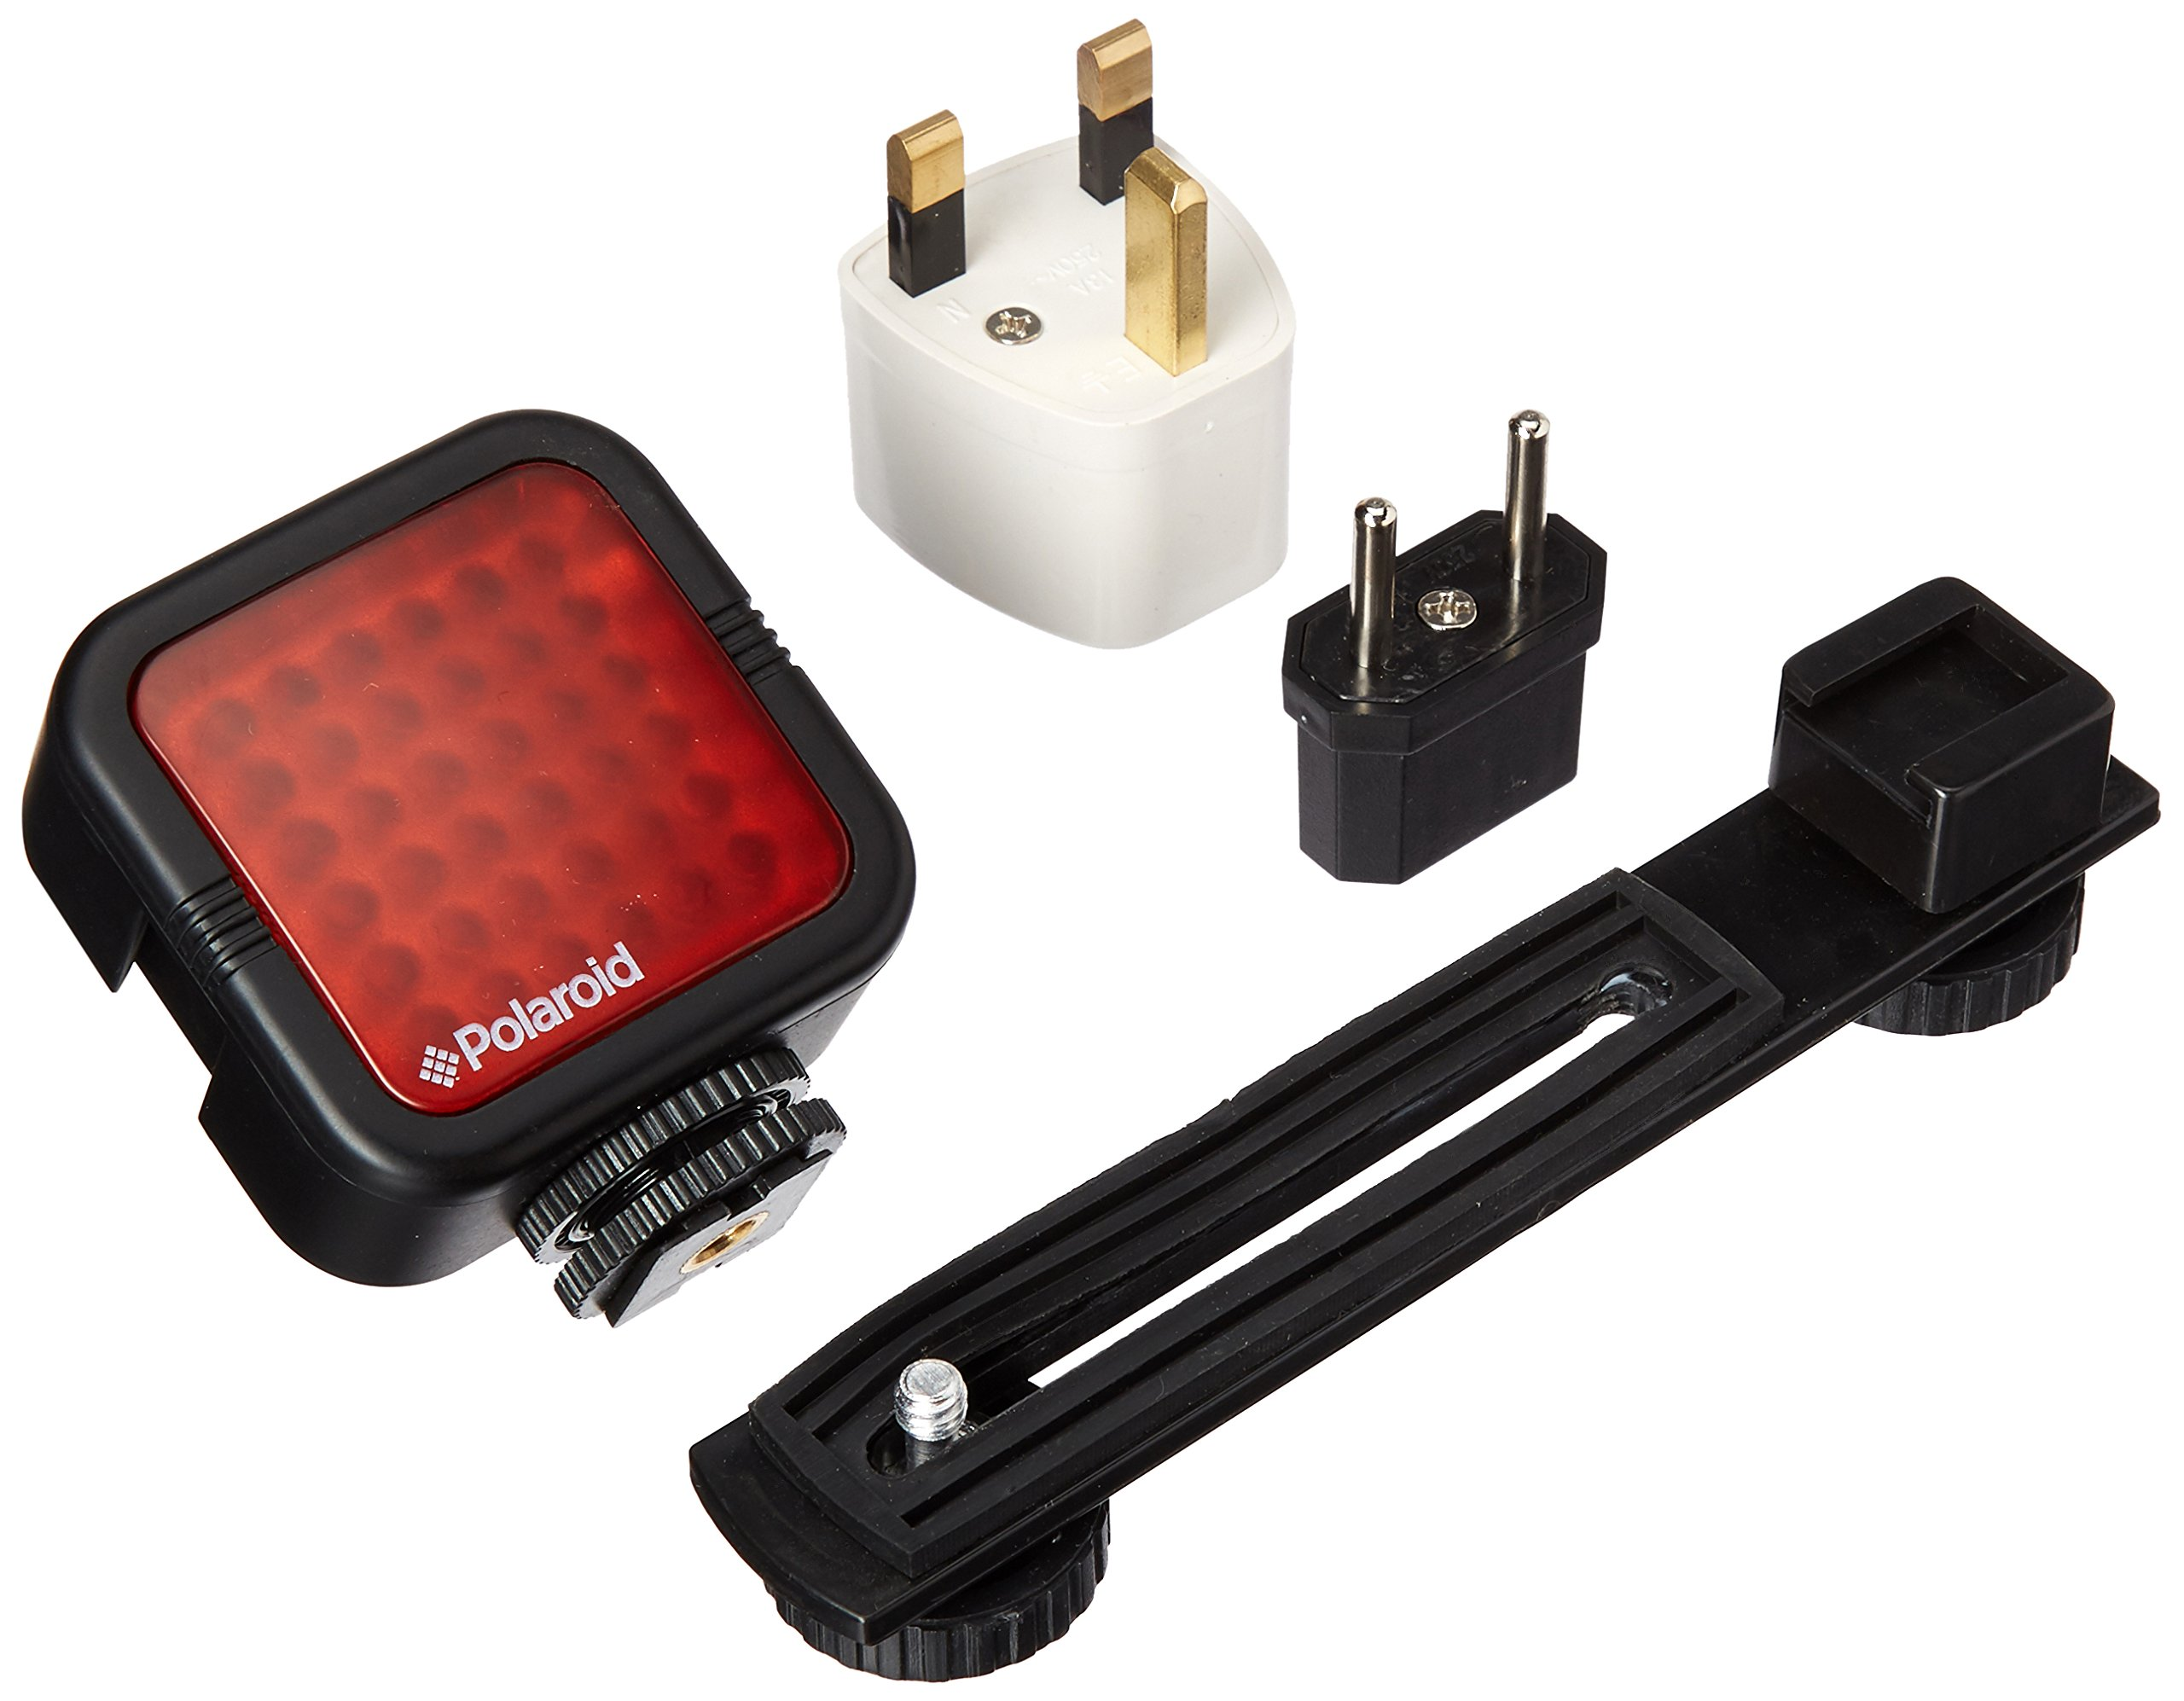 Polaroid Studio Series Rechargeable IR Night Light 36 LED Light Bar For Camcorders, Digital Cameras & SLR's by Polaroid